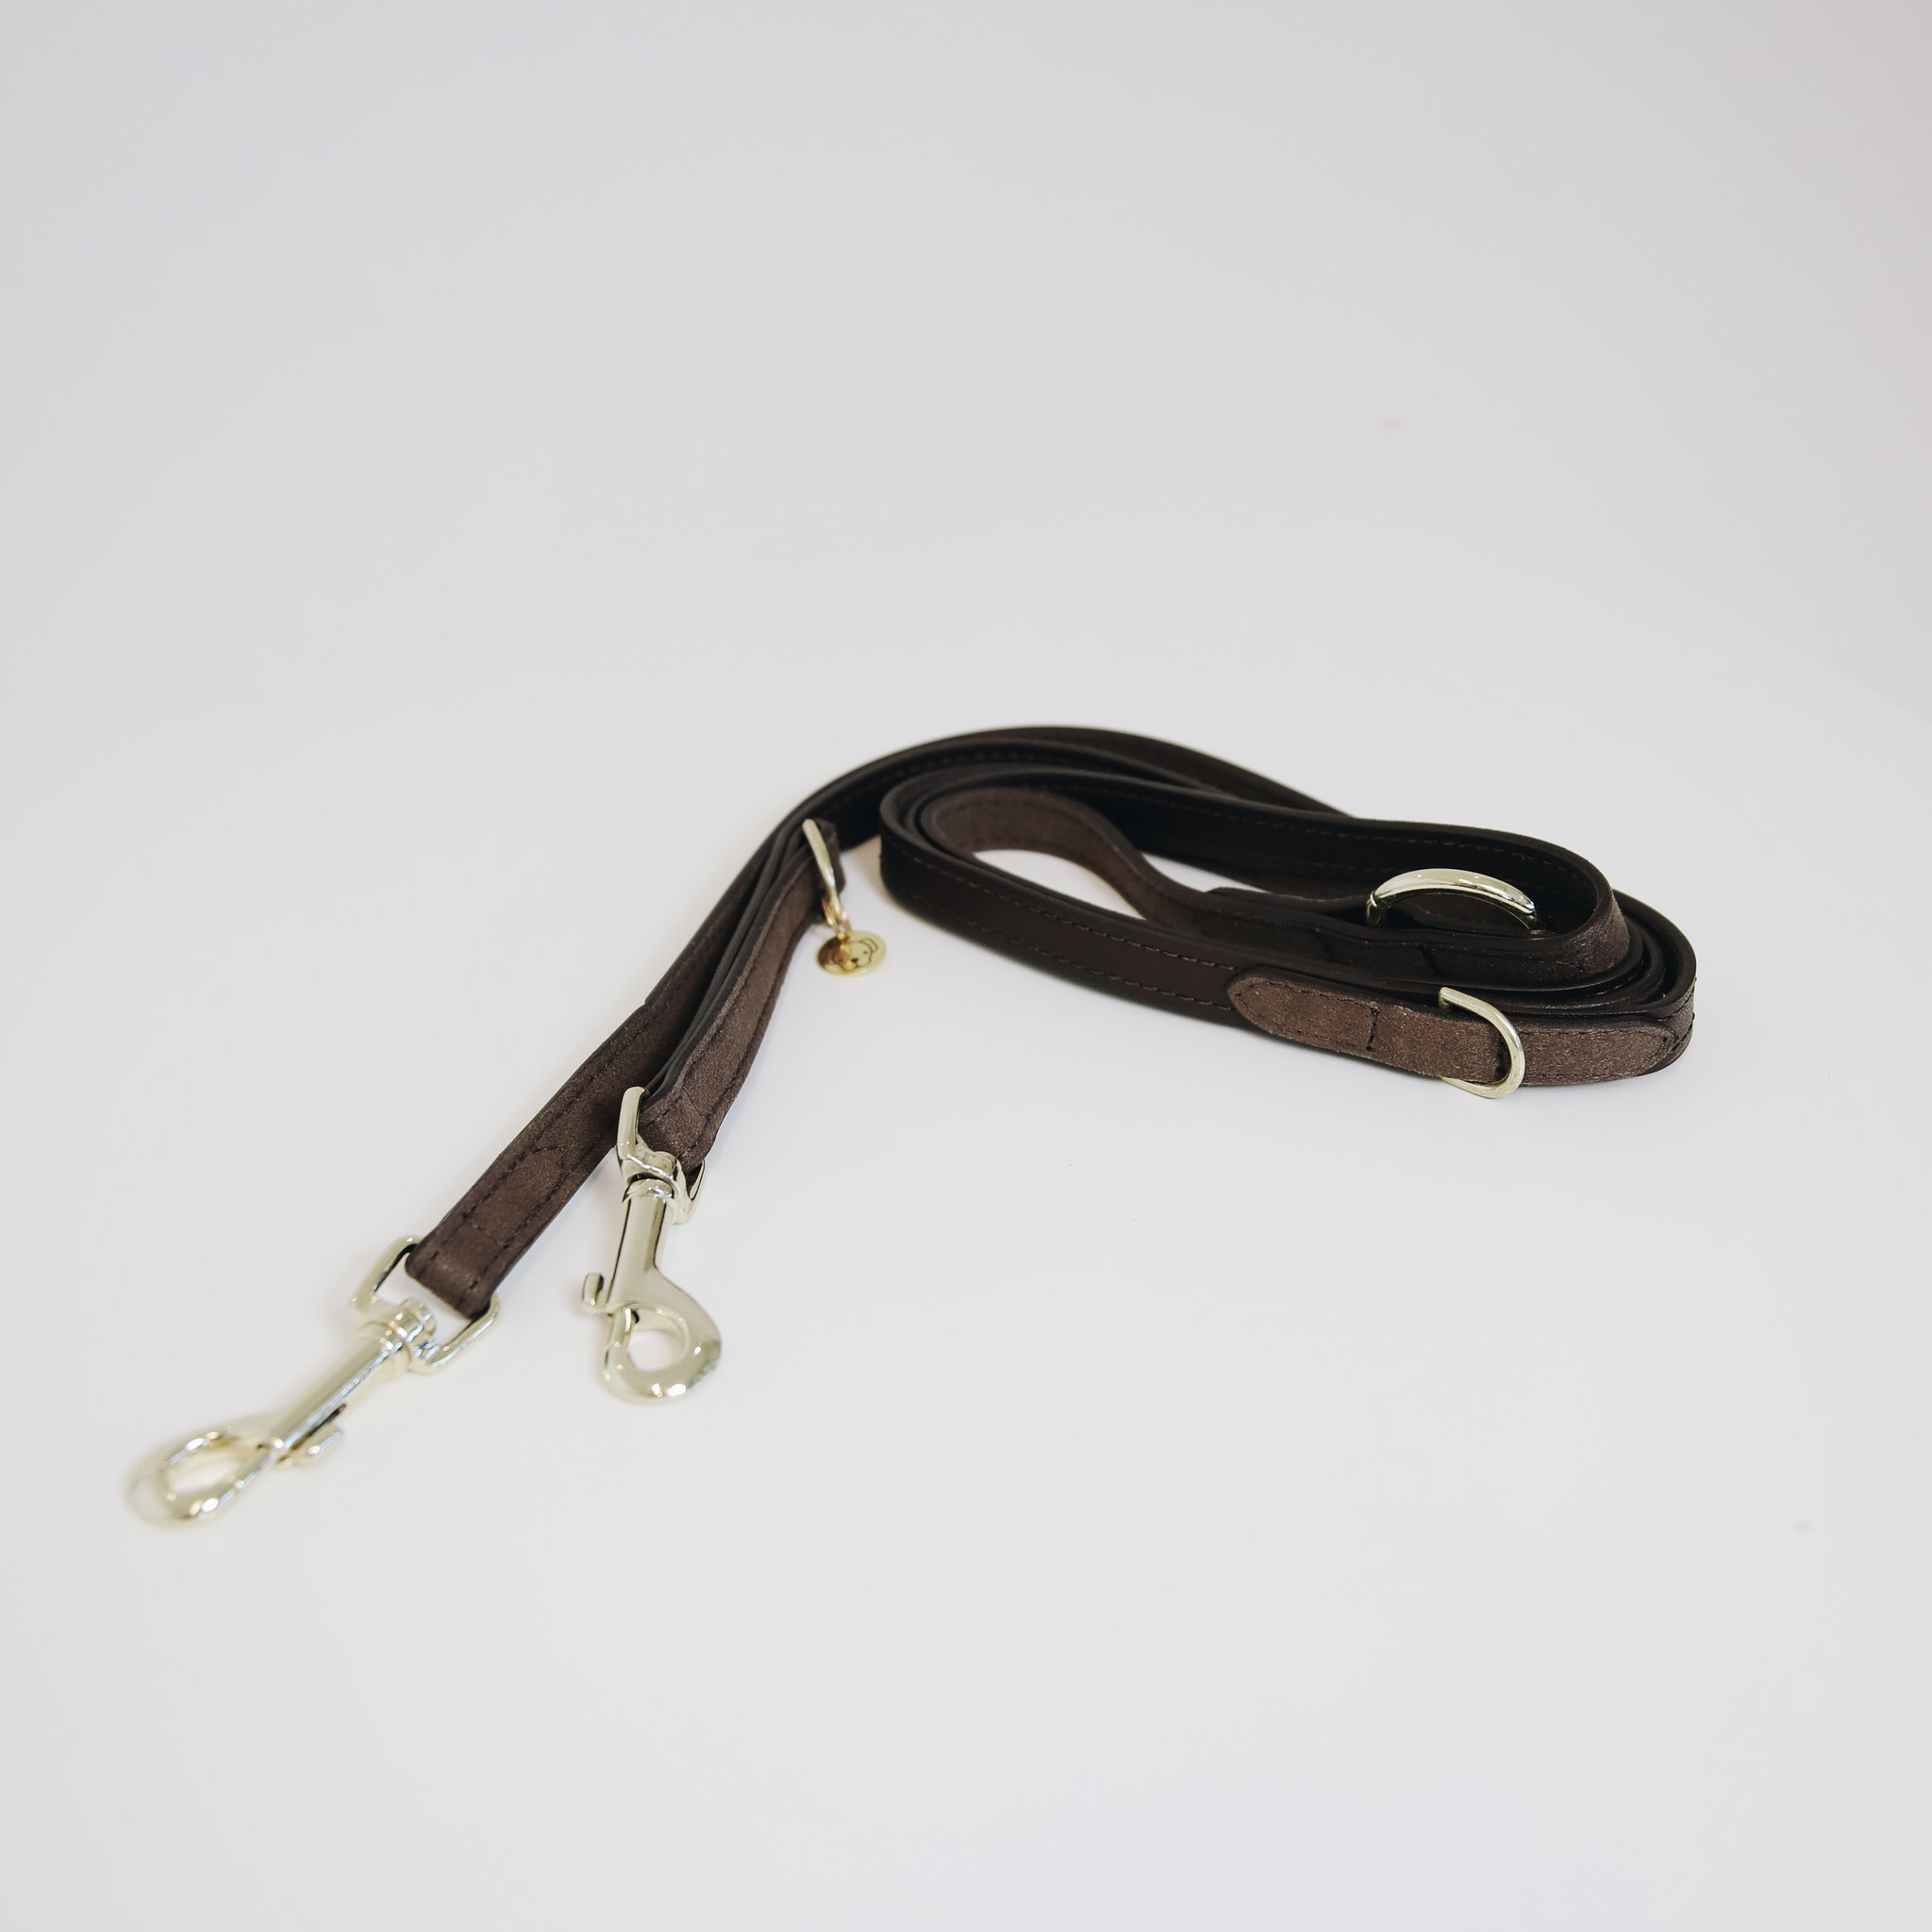 Kentucky Kentucky leiband Velvet leather verstelbaar 2m